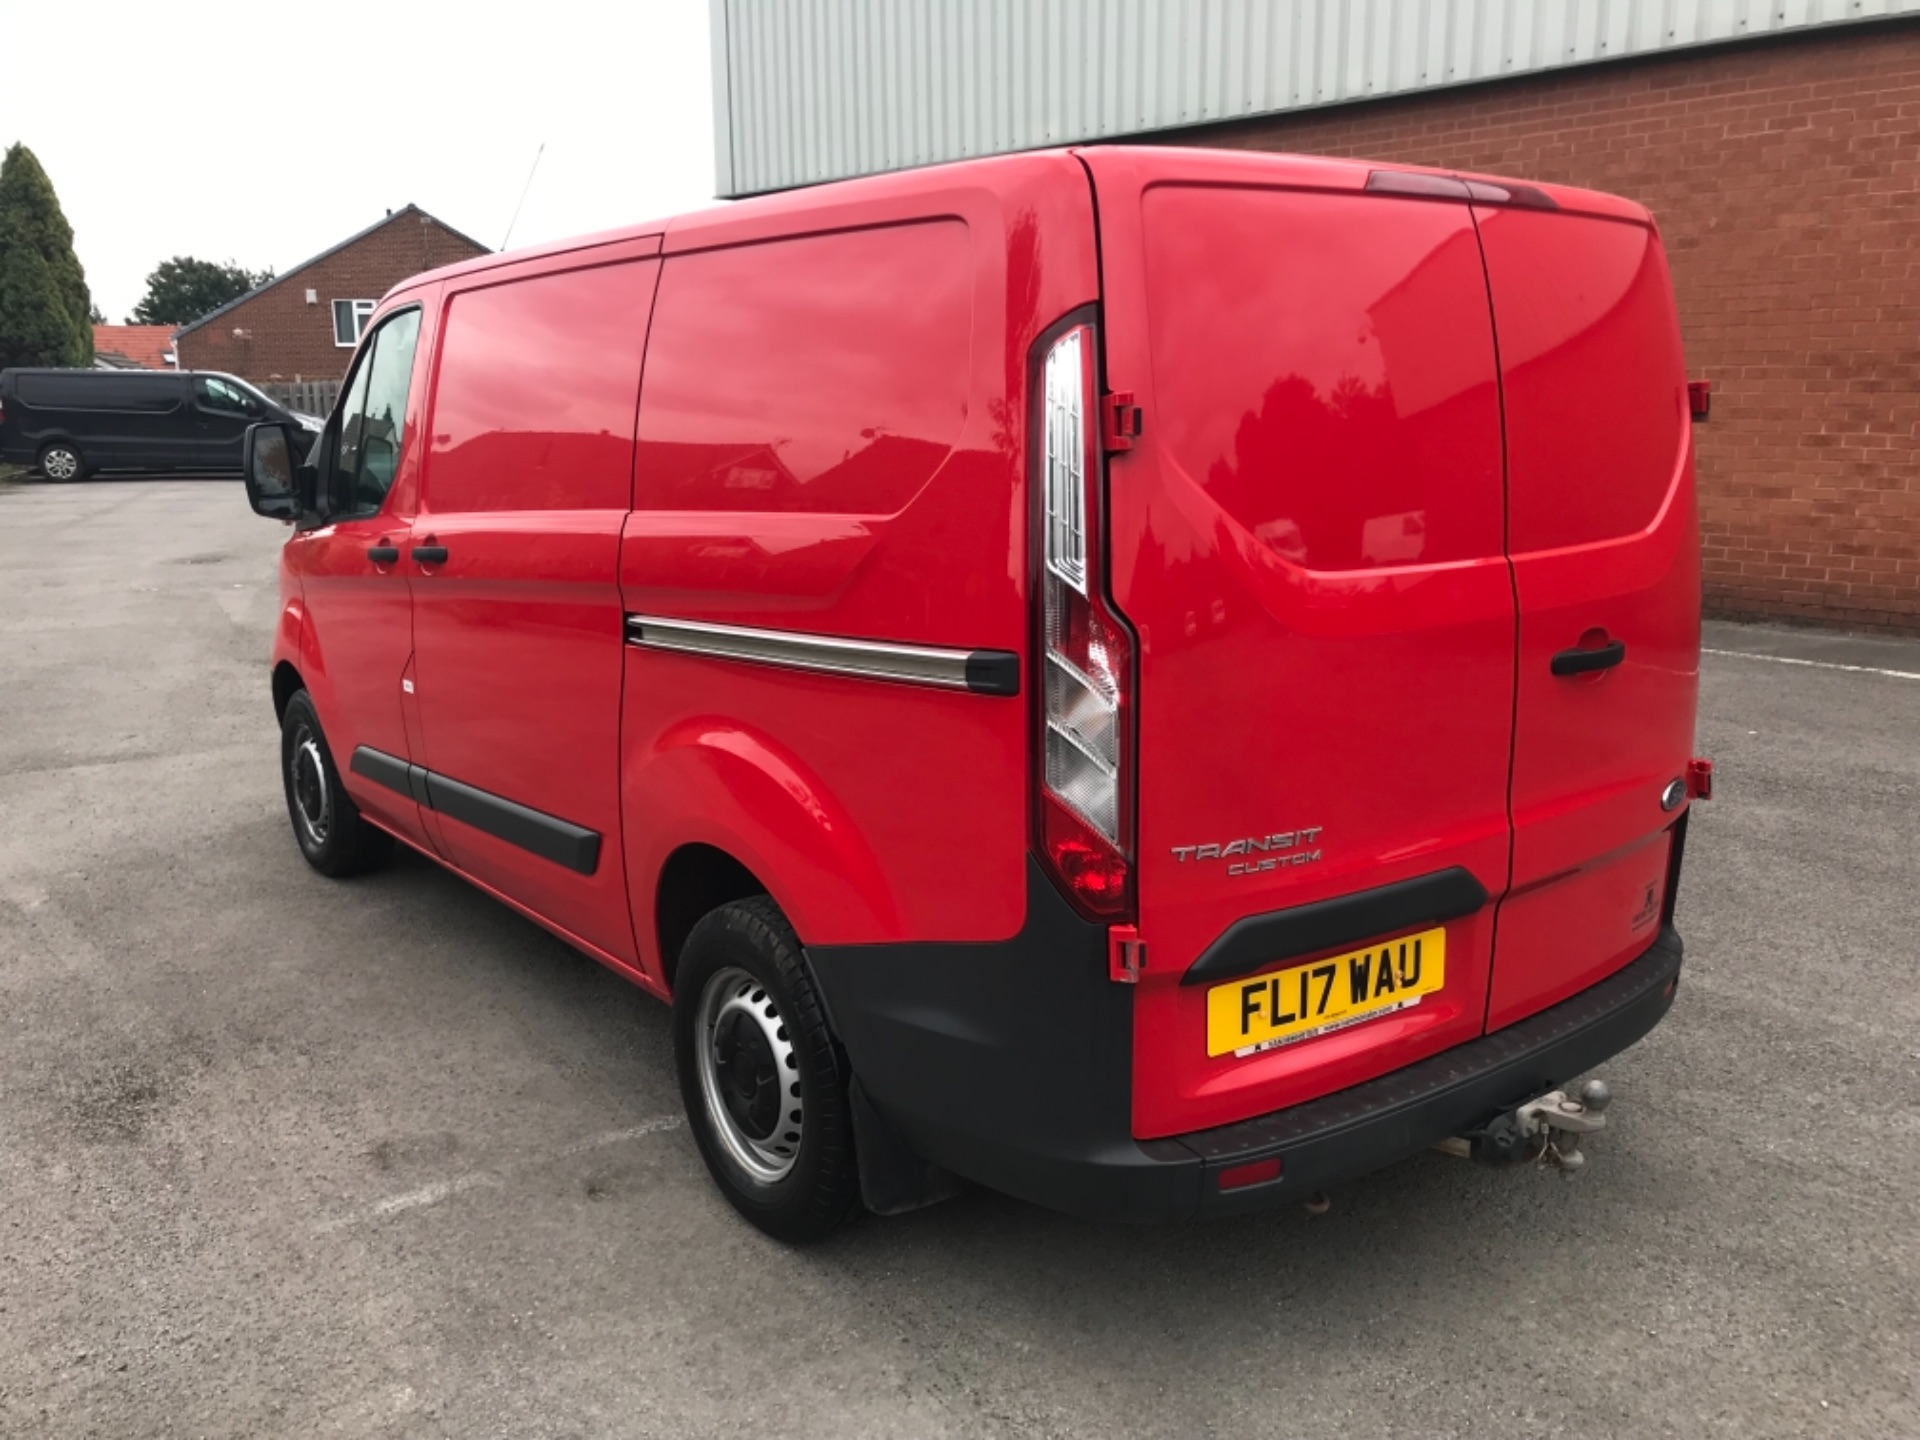 2017 Ford Transit Custom 2.0 Tdci 105Ps Low Roof Van EURO 6 (FL17WAU) Image 5